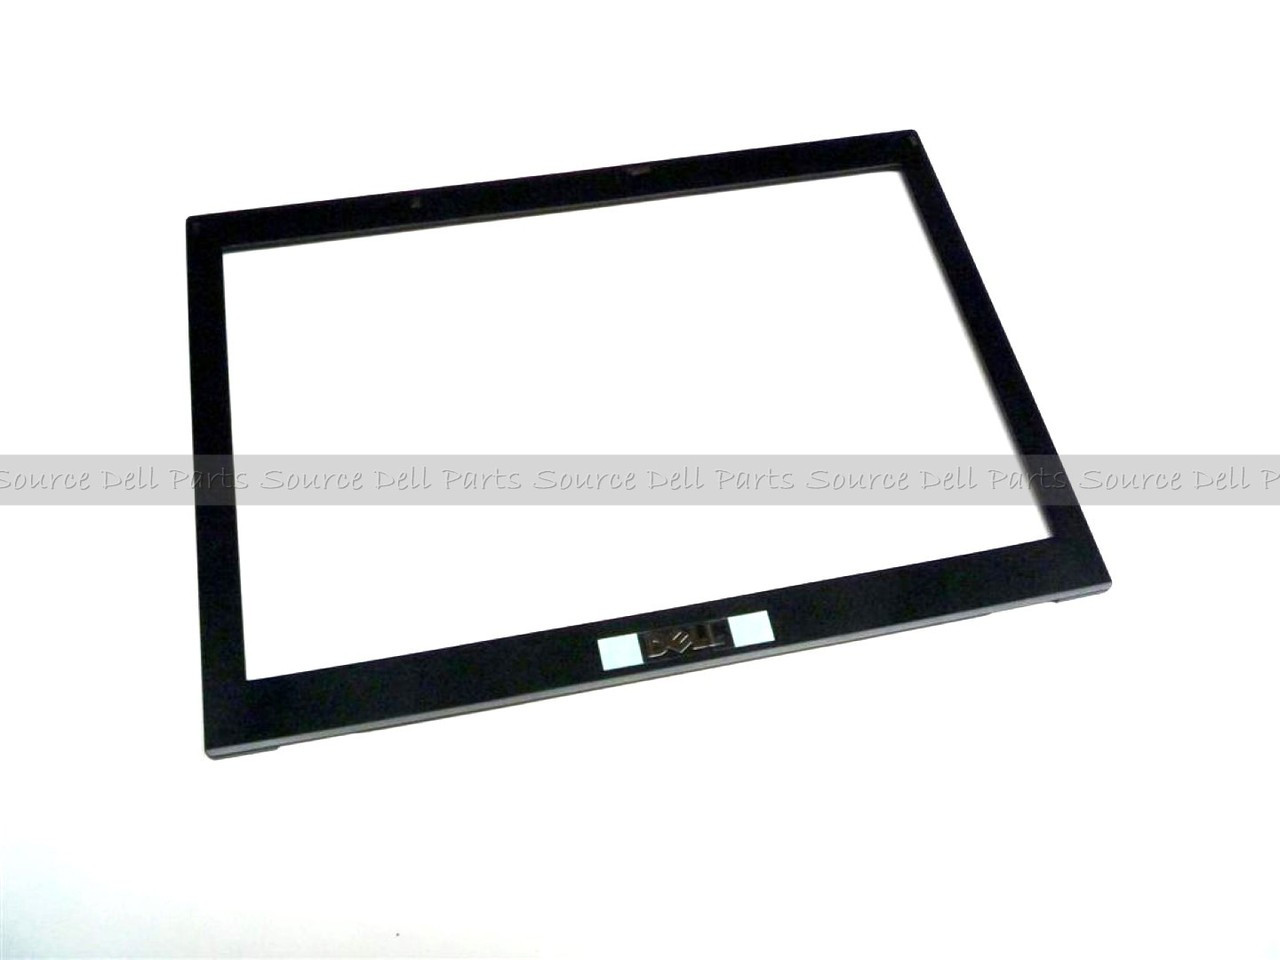 Dell Latitude E6410 LCD Front Trim Bezel Without Camera Window - T8K98